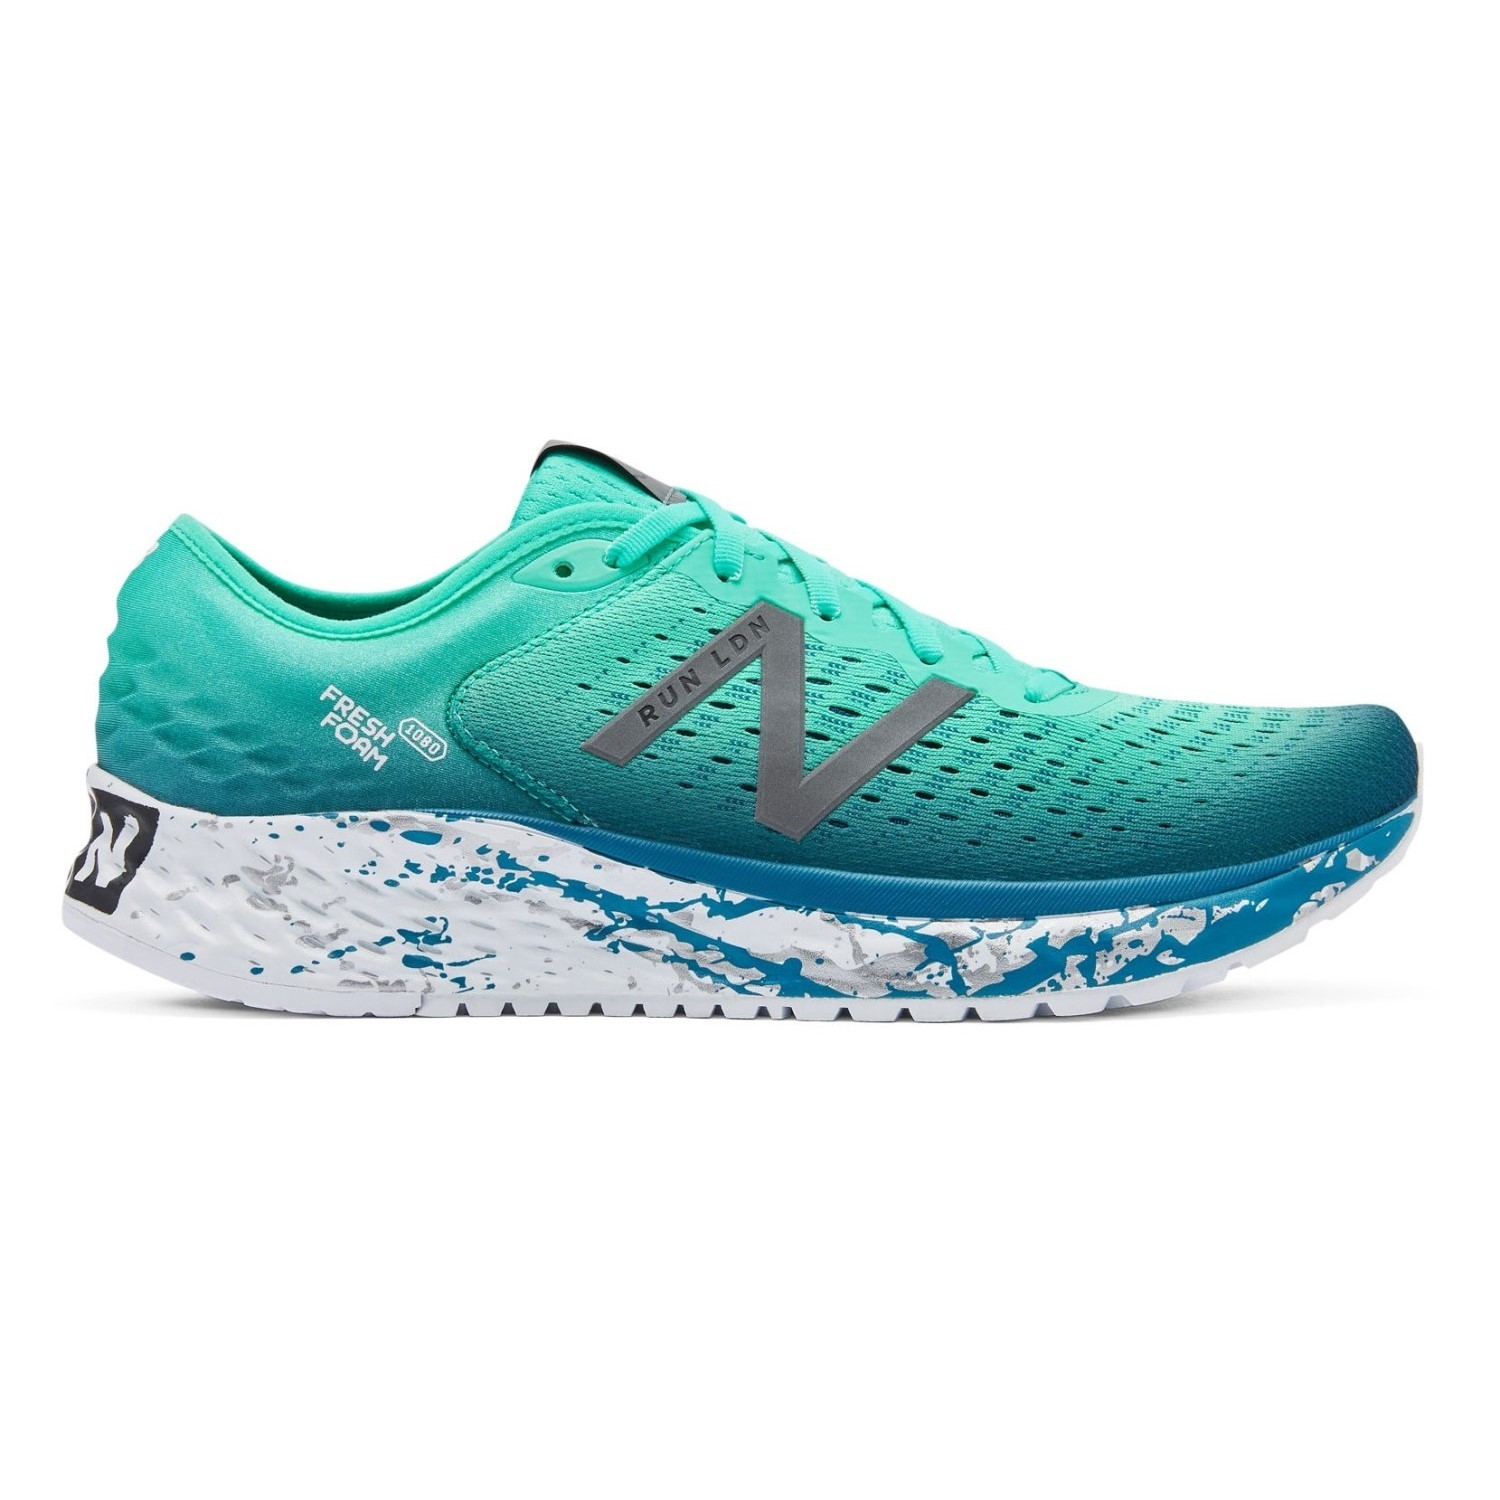 3cda62e0 New Balance Fresh Foam 1080v9 London Edition - Mens Running Shoes